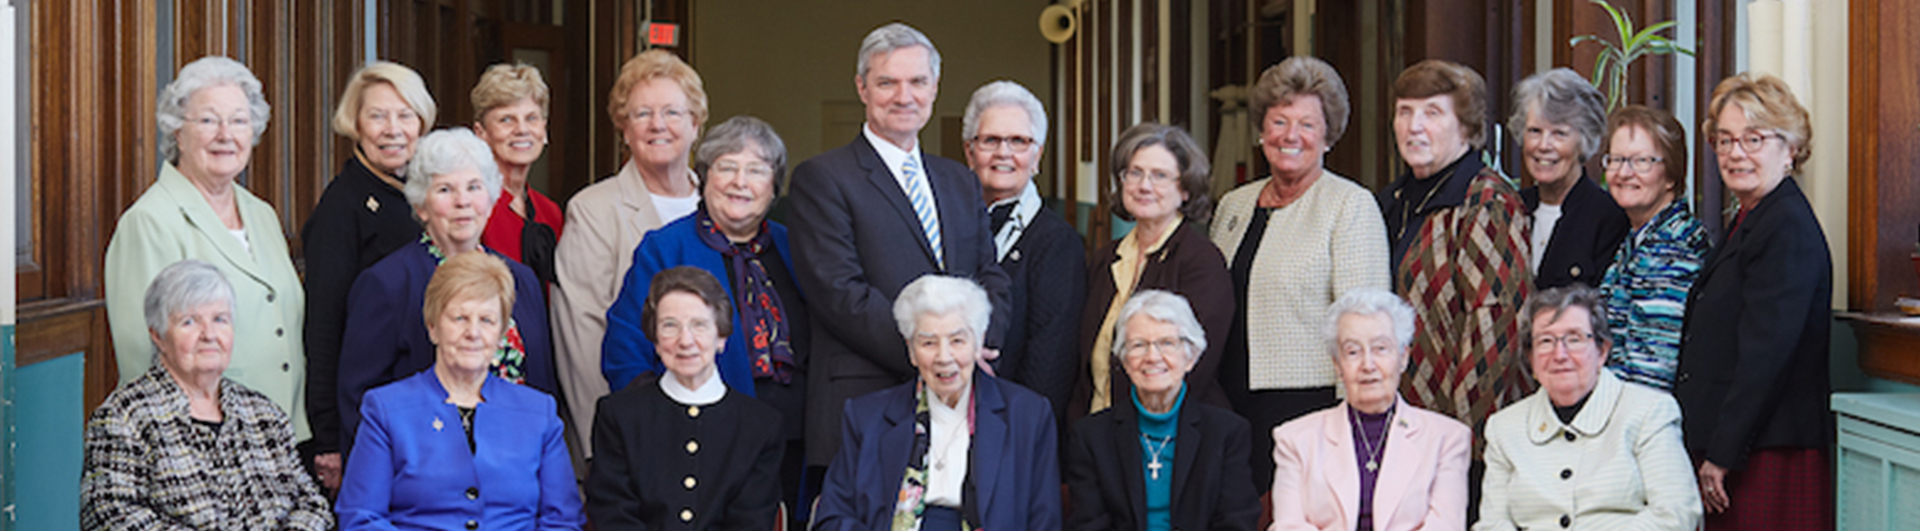 President Boomgaarden with the Sisters of St. Joseph.